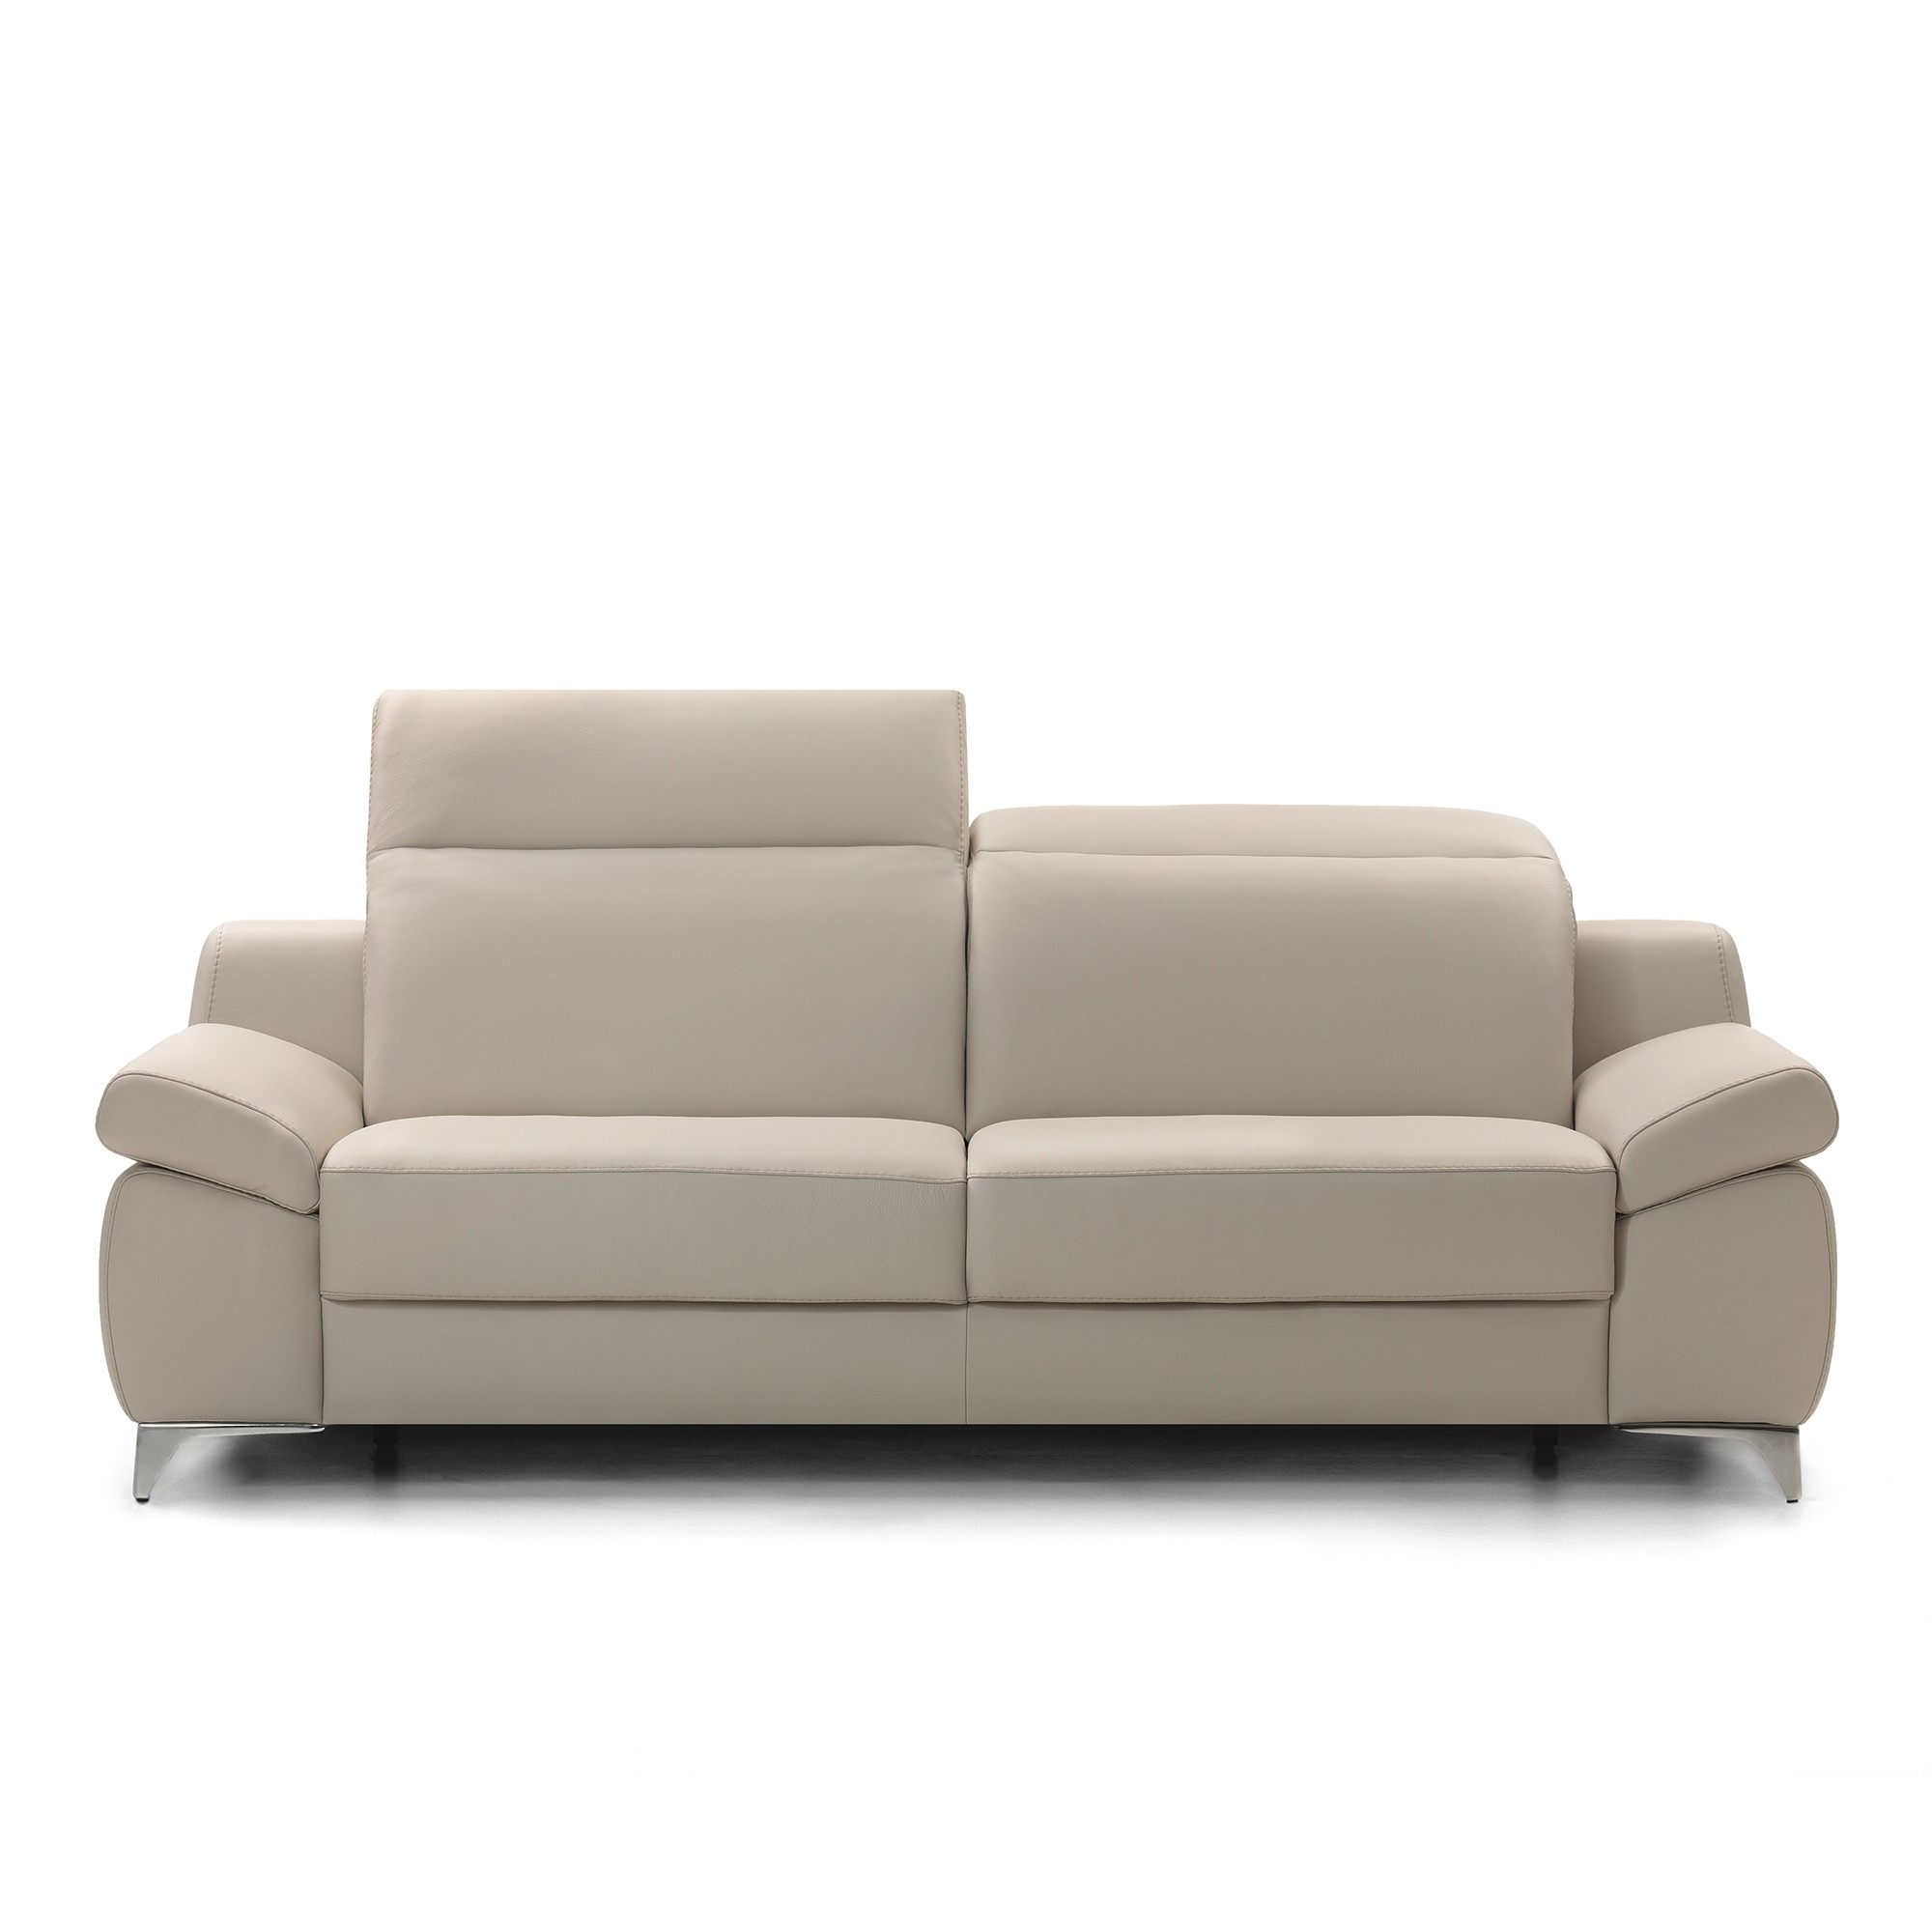 Rom Wren Power Recliner Sofa Large – Recliner Sofas – Cookes Furniture In Recliner Sofas (Image 9 of 10)